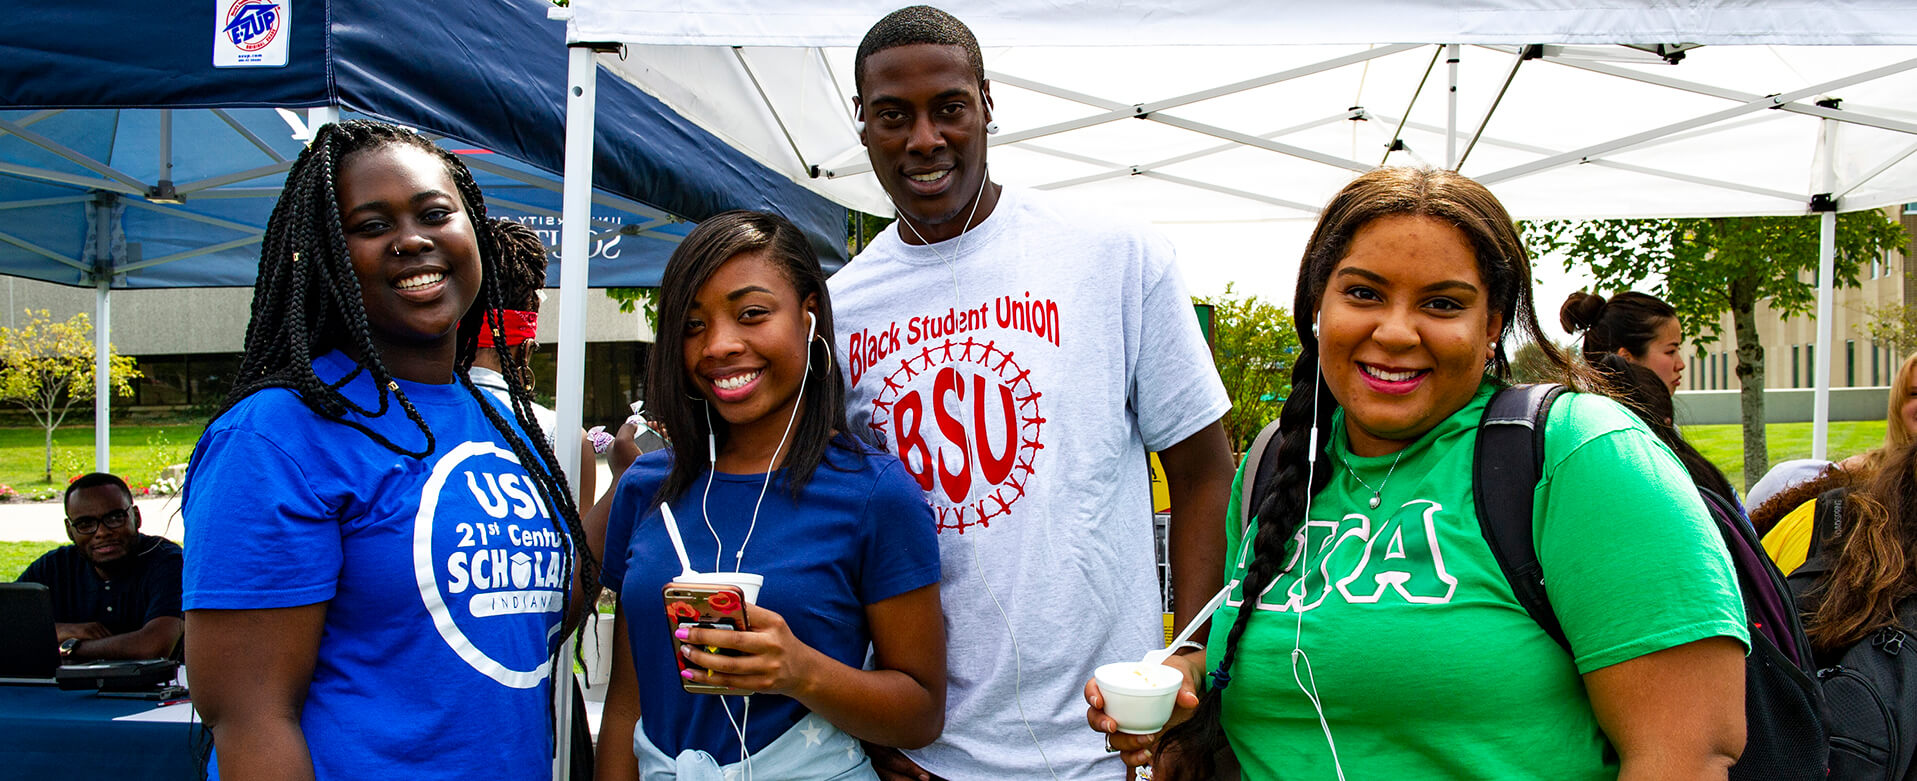 four students at involvement fair, enjoying ice-cream, wearing t-shirts that represent their various organizations (USI 21st century scholars, Black Student Union, sorority)